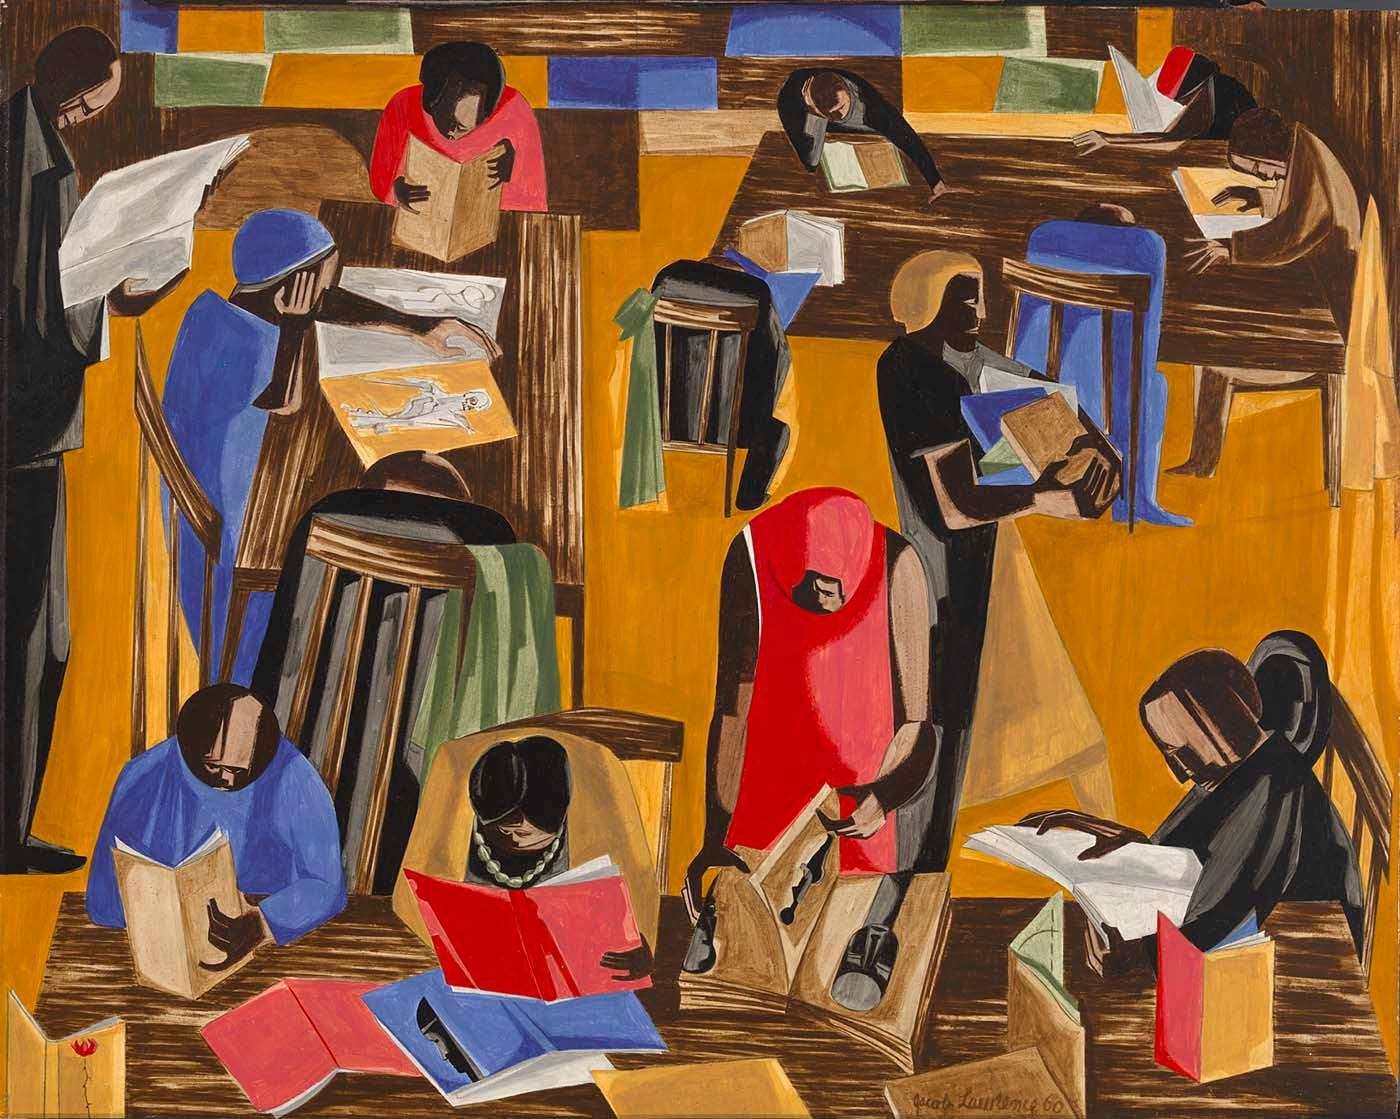 Why The Works Of Visionary Artist Jacob Lawrence Still Resonate A - Artist suffering from depression illustrates his struggles with mysterious dark paintings